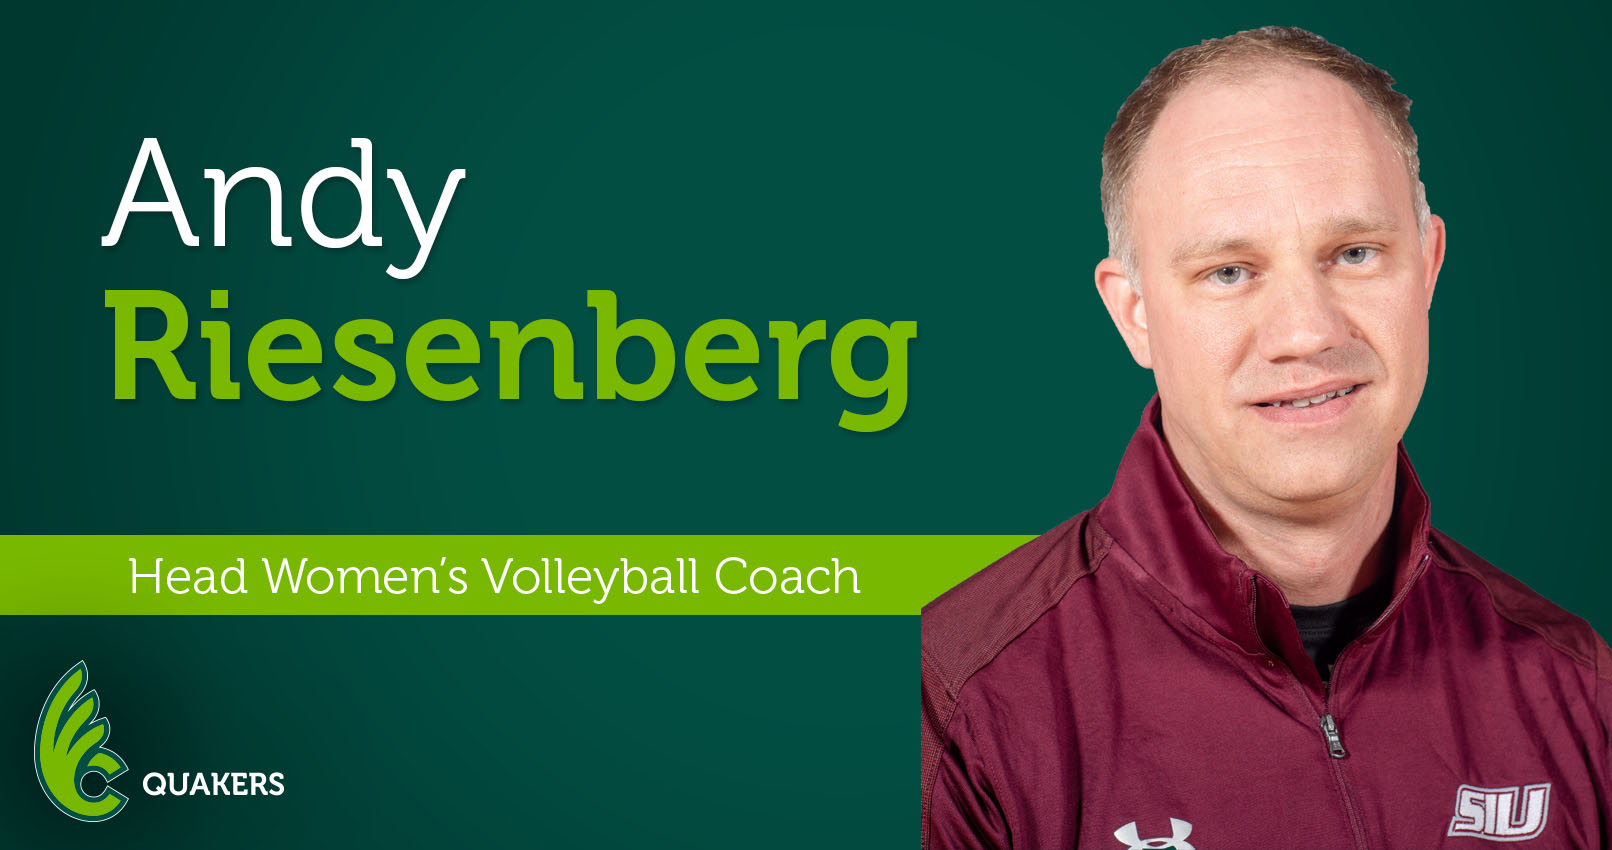 Andy Riesenberg Named Head Volleyball Coach